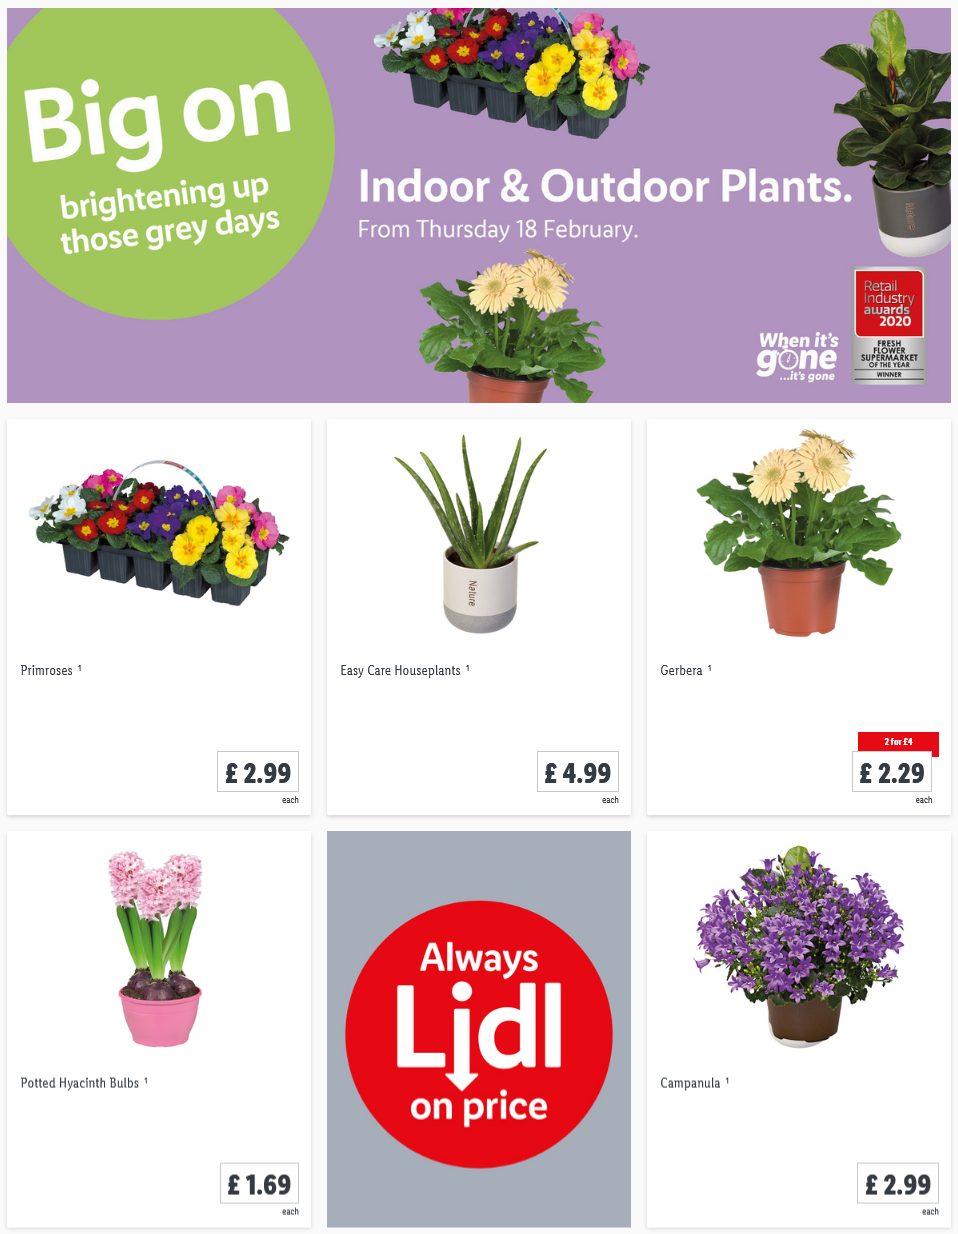 LIDL Offers this Thursday Indoor Outdoor Plants From 18th February 2021